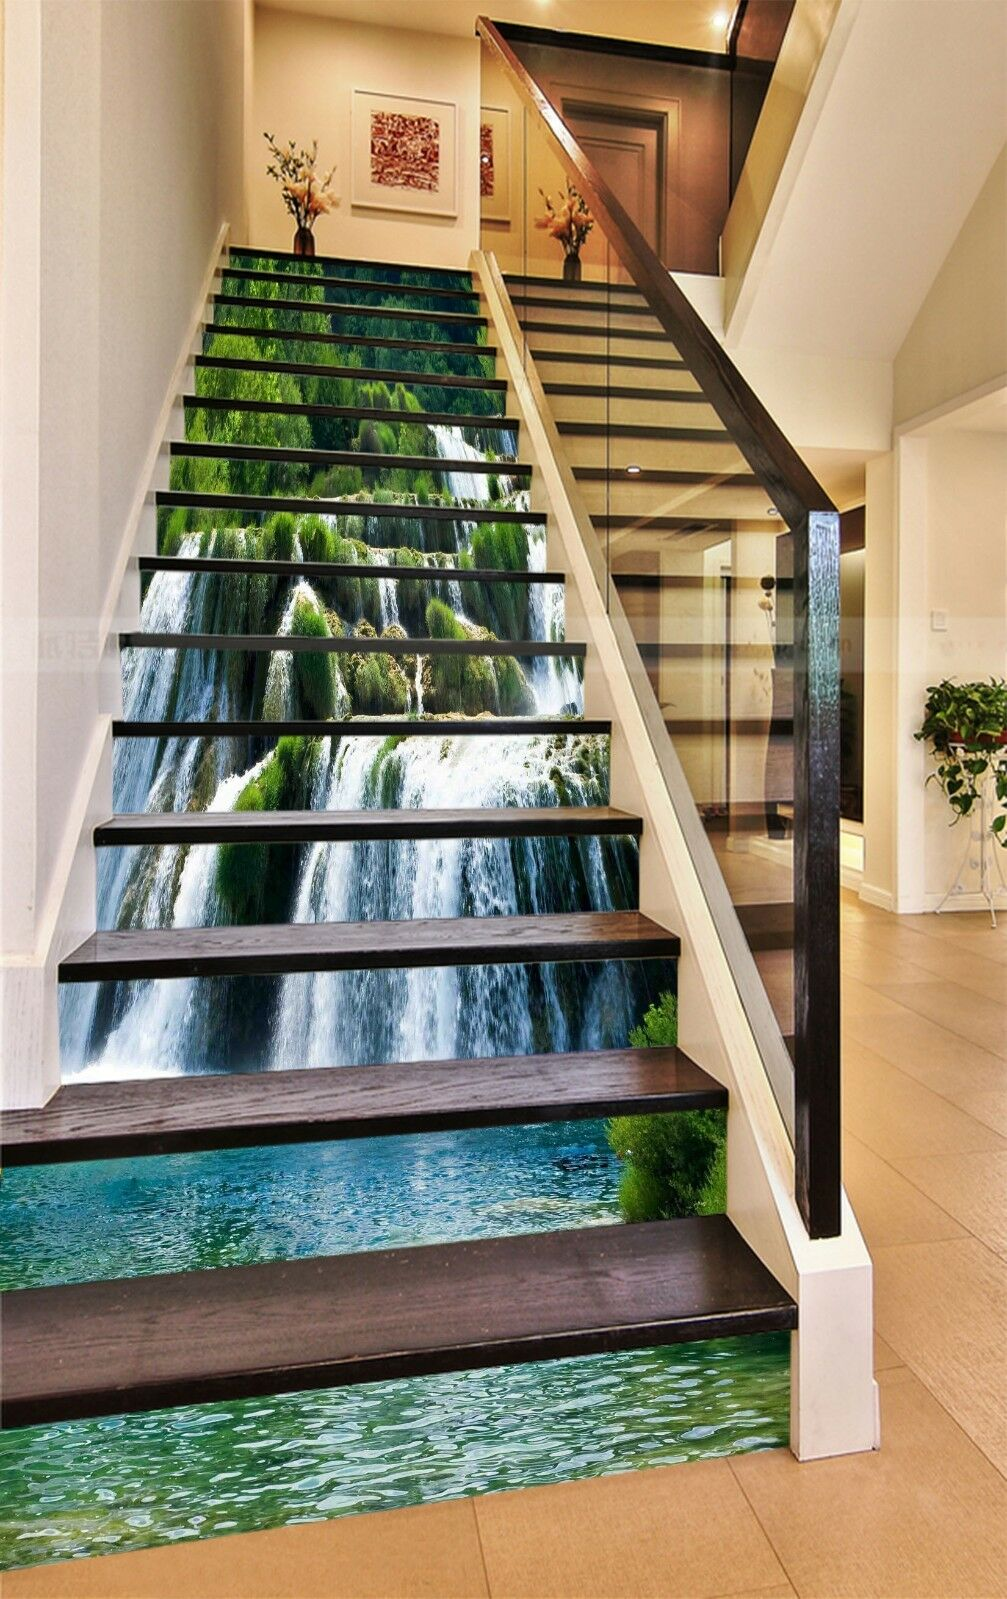 3D Tree falls 7 Stair Risers Decoration Photo Mural Vinyl Decal Wallpaper UK